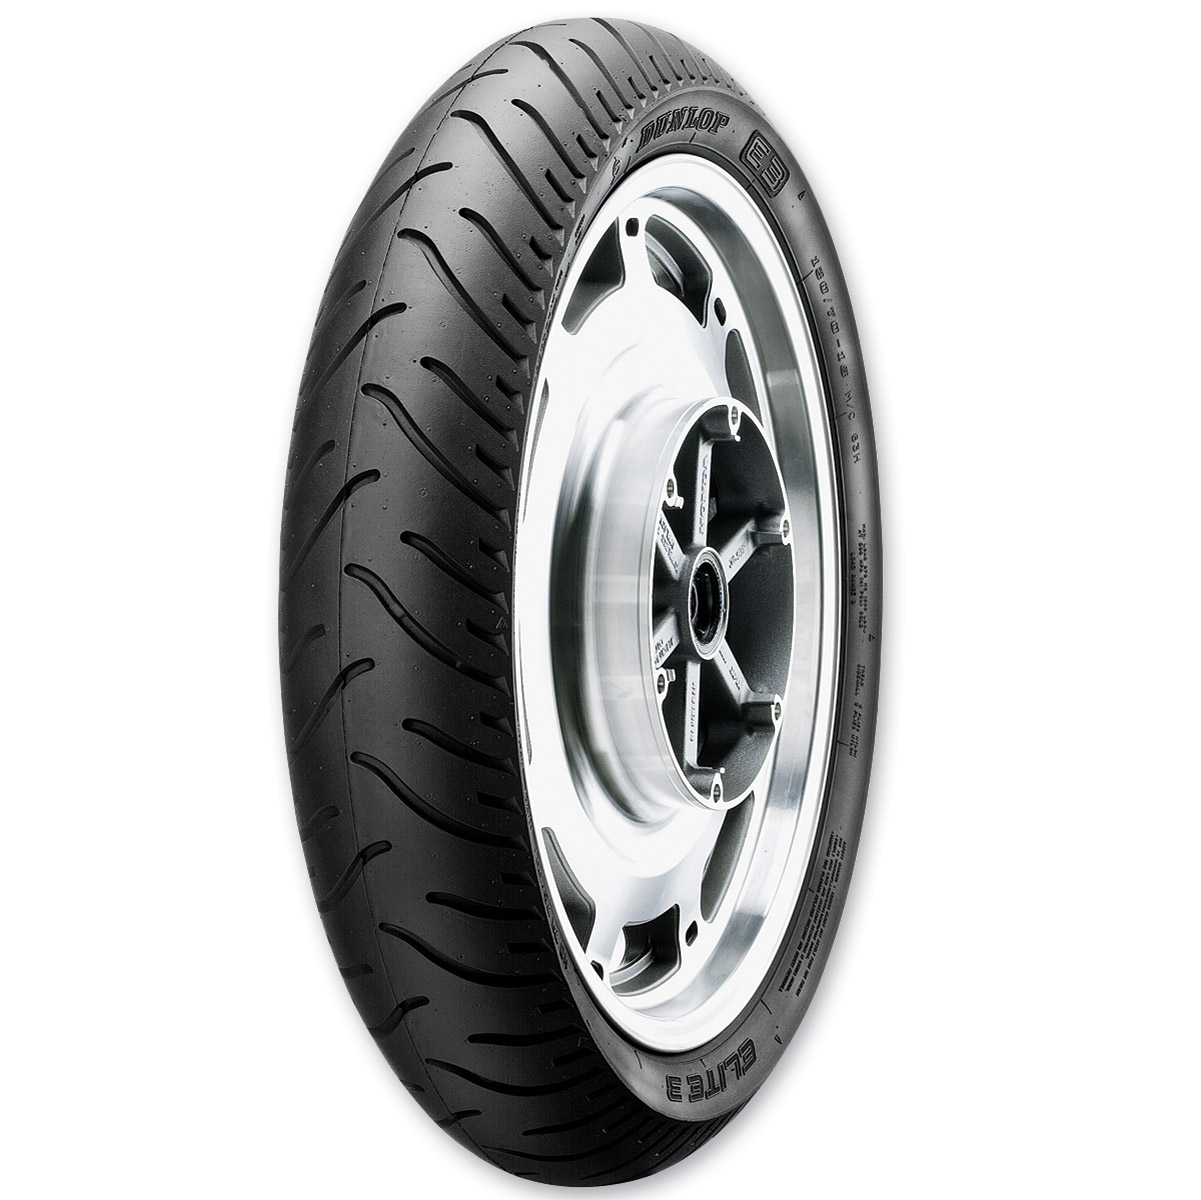 Dunlop Elite 3 MT90B16 Front Tire